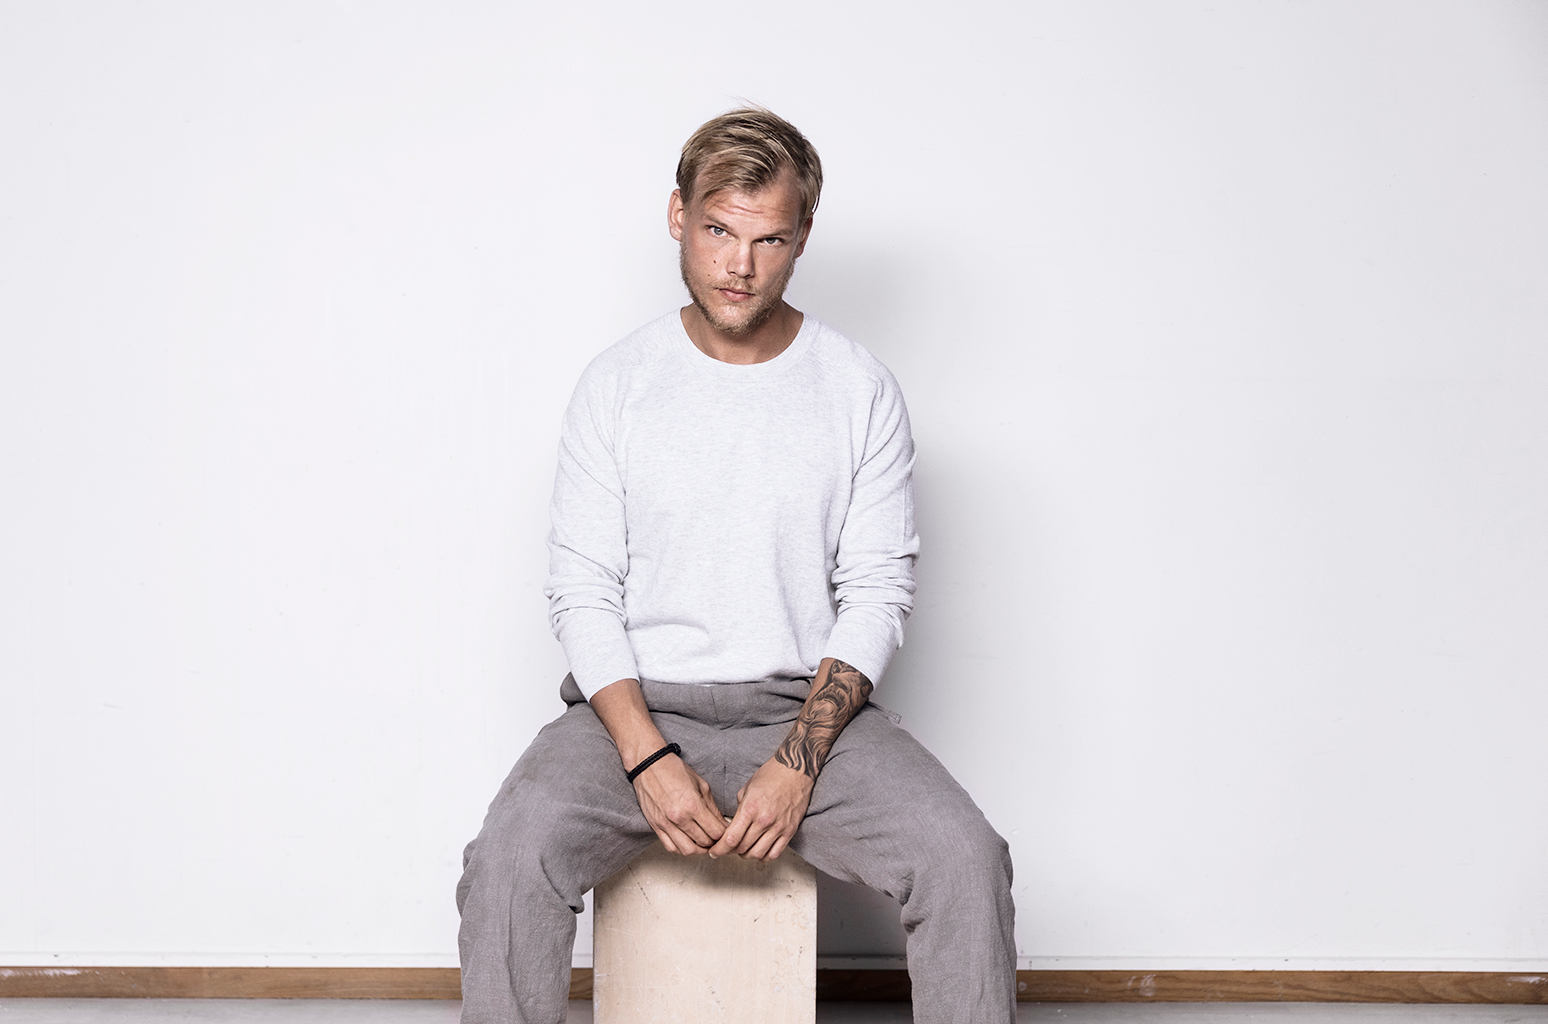 Este 26 de octubre, Avicii -y su documental 'True Stories'- en exclusiva en Yelmo Cines f71d2533 df3e 412f 831e 2fbc92431c60